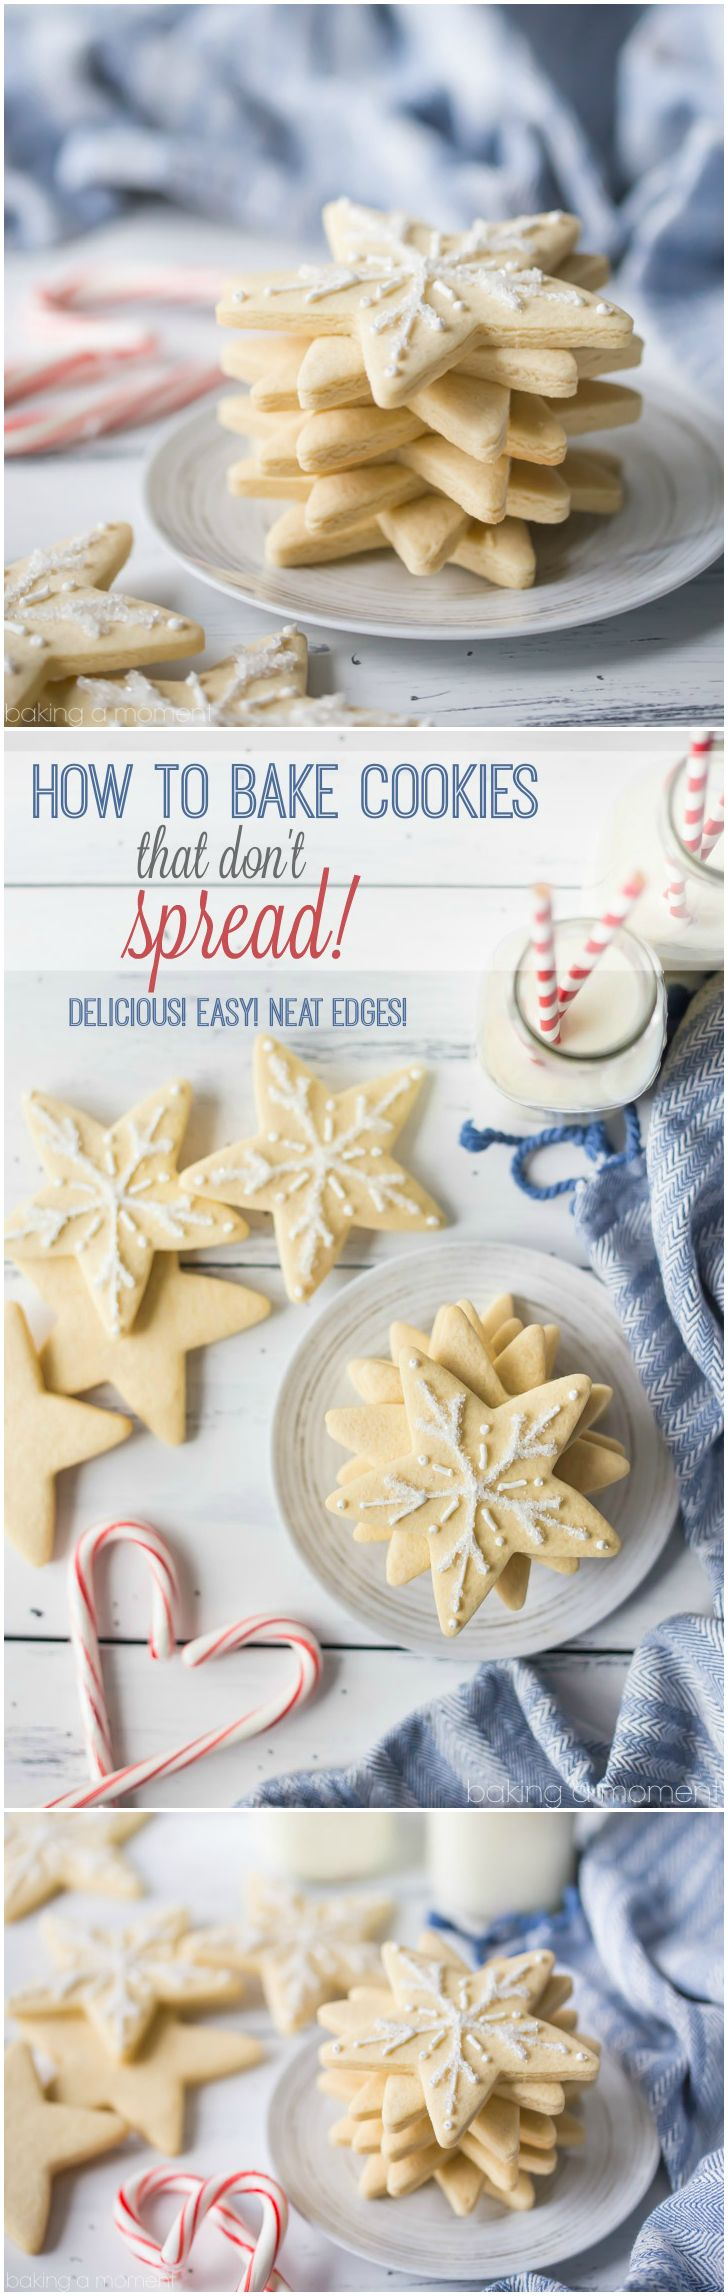 Learn the secrets to baking cutout cookies with neat edges, that won